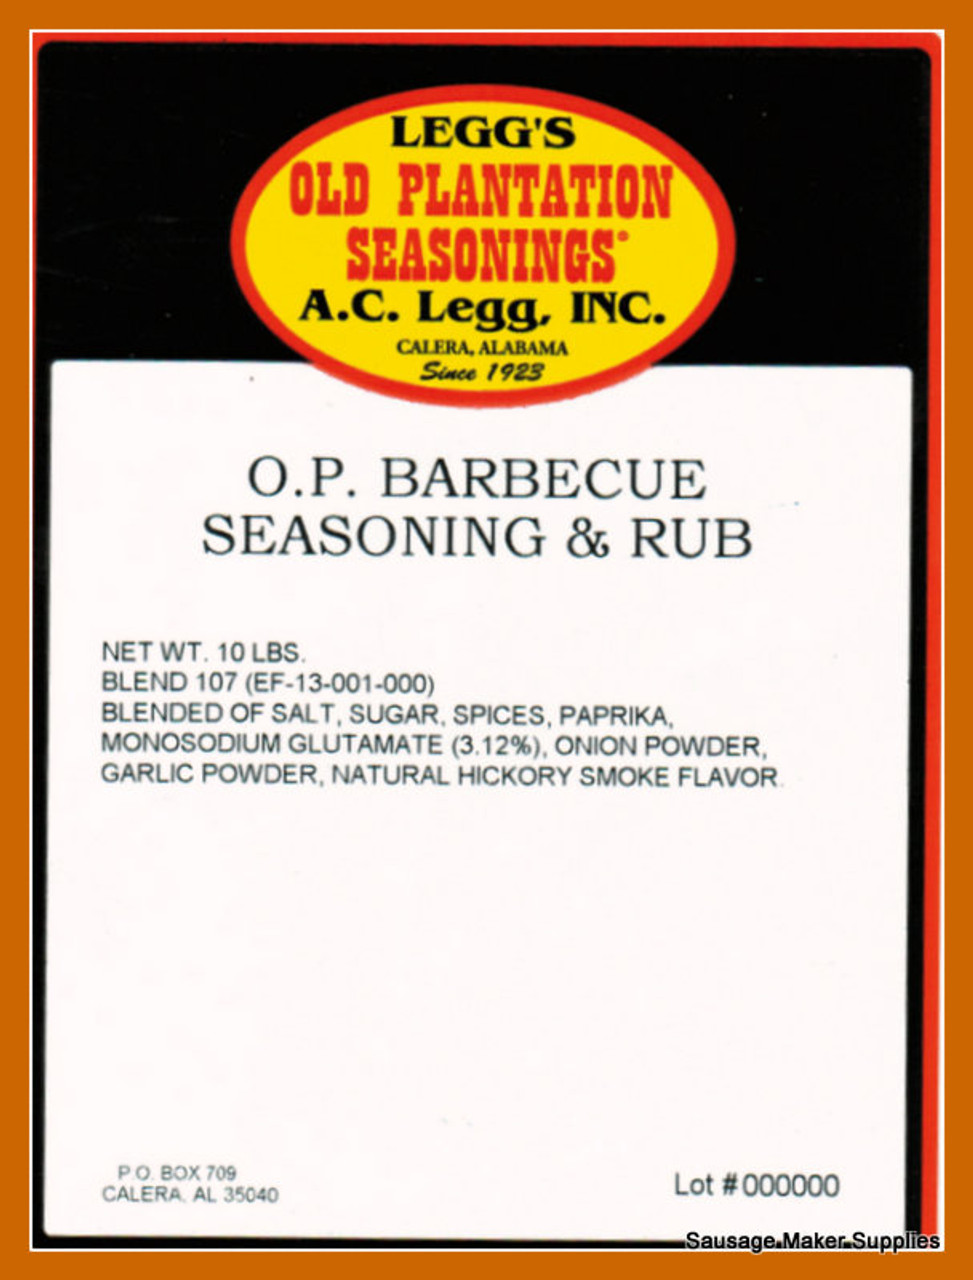 Barbecue Seasoning And Rub Blend 107 This blend of seasonings can be either sprinkled on meat after it is cooked, or used ahead of cooking as a marinade.